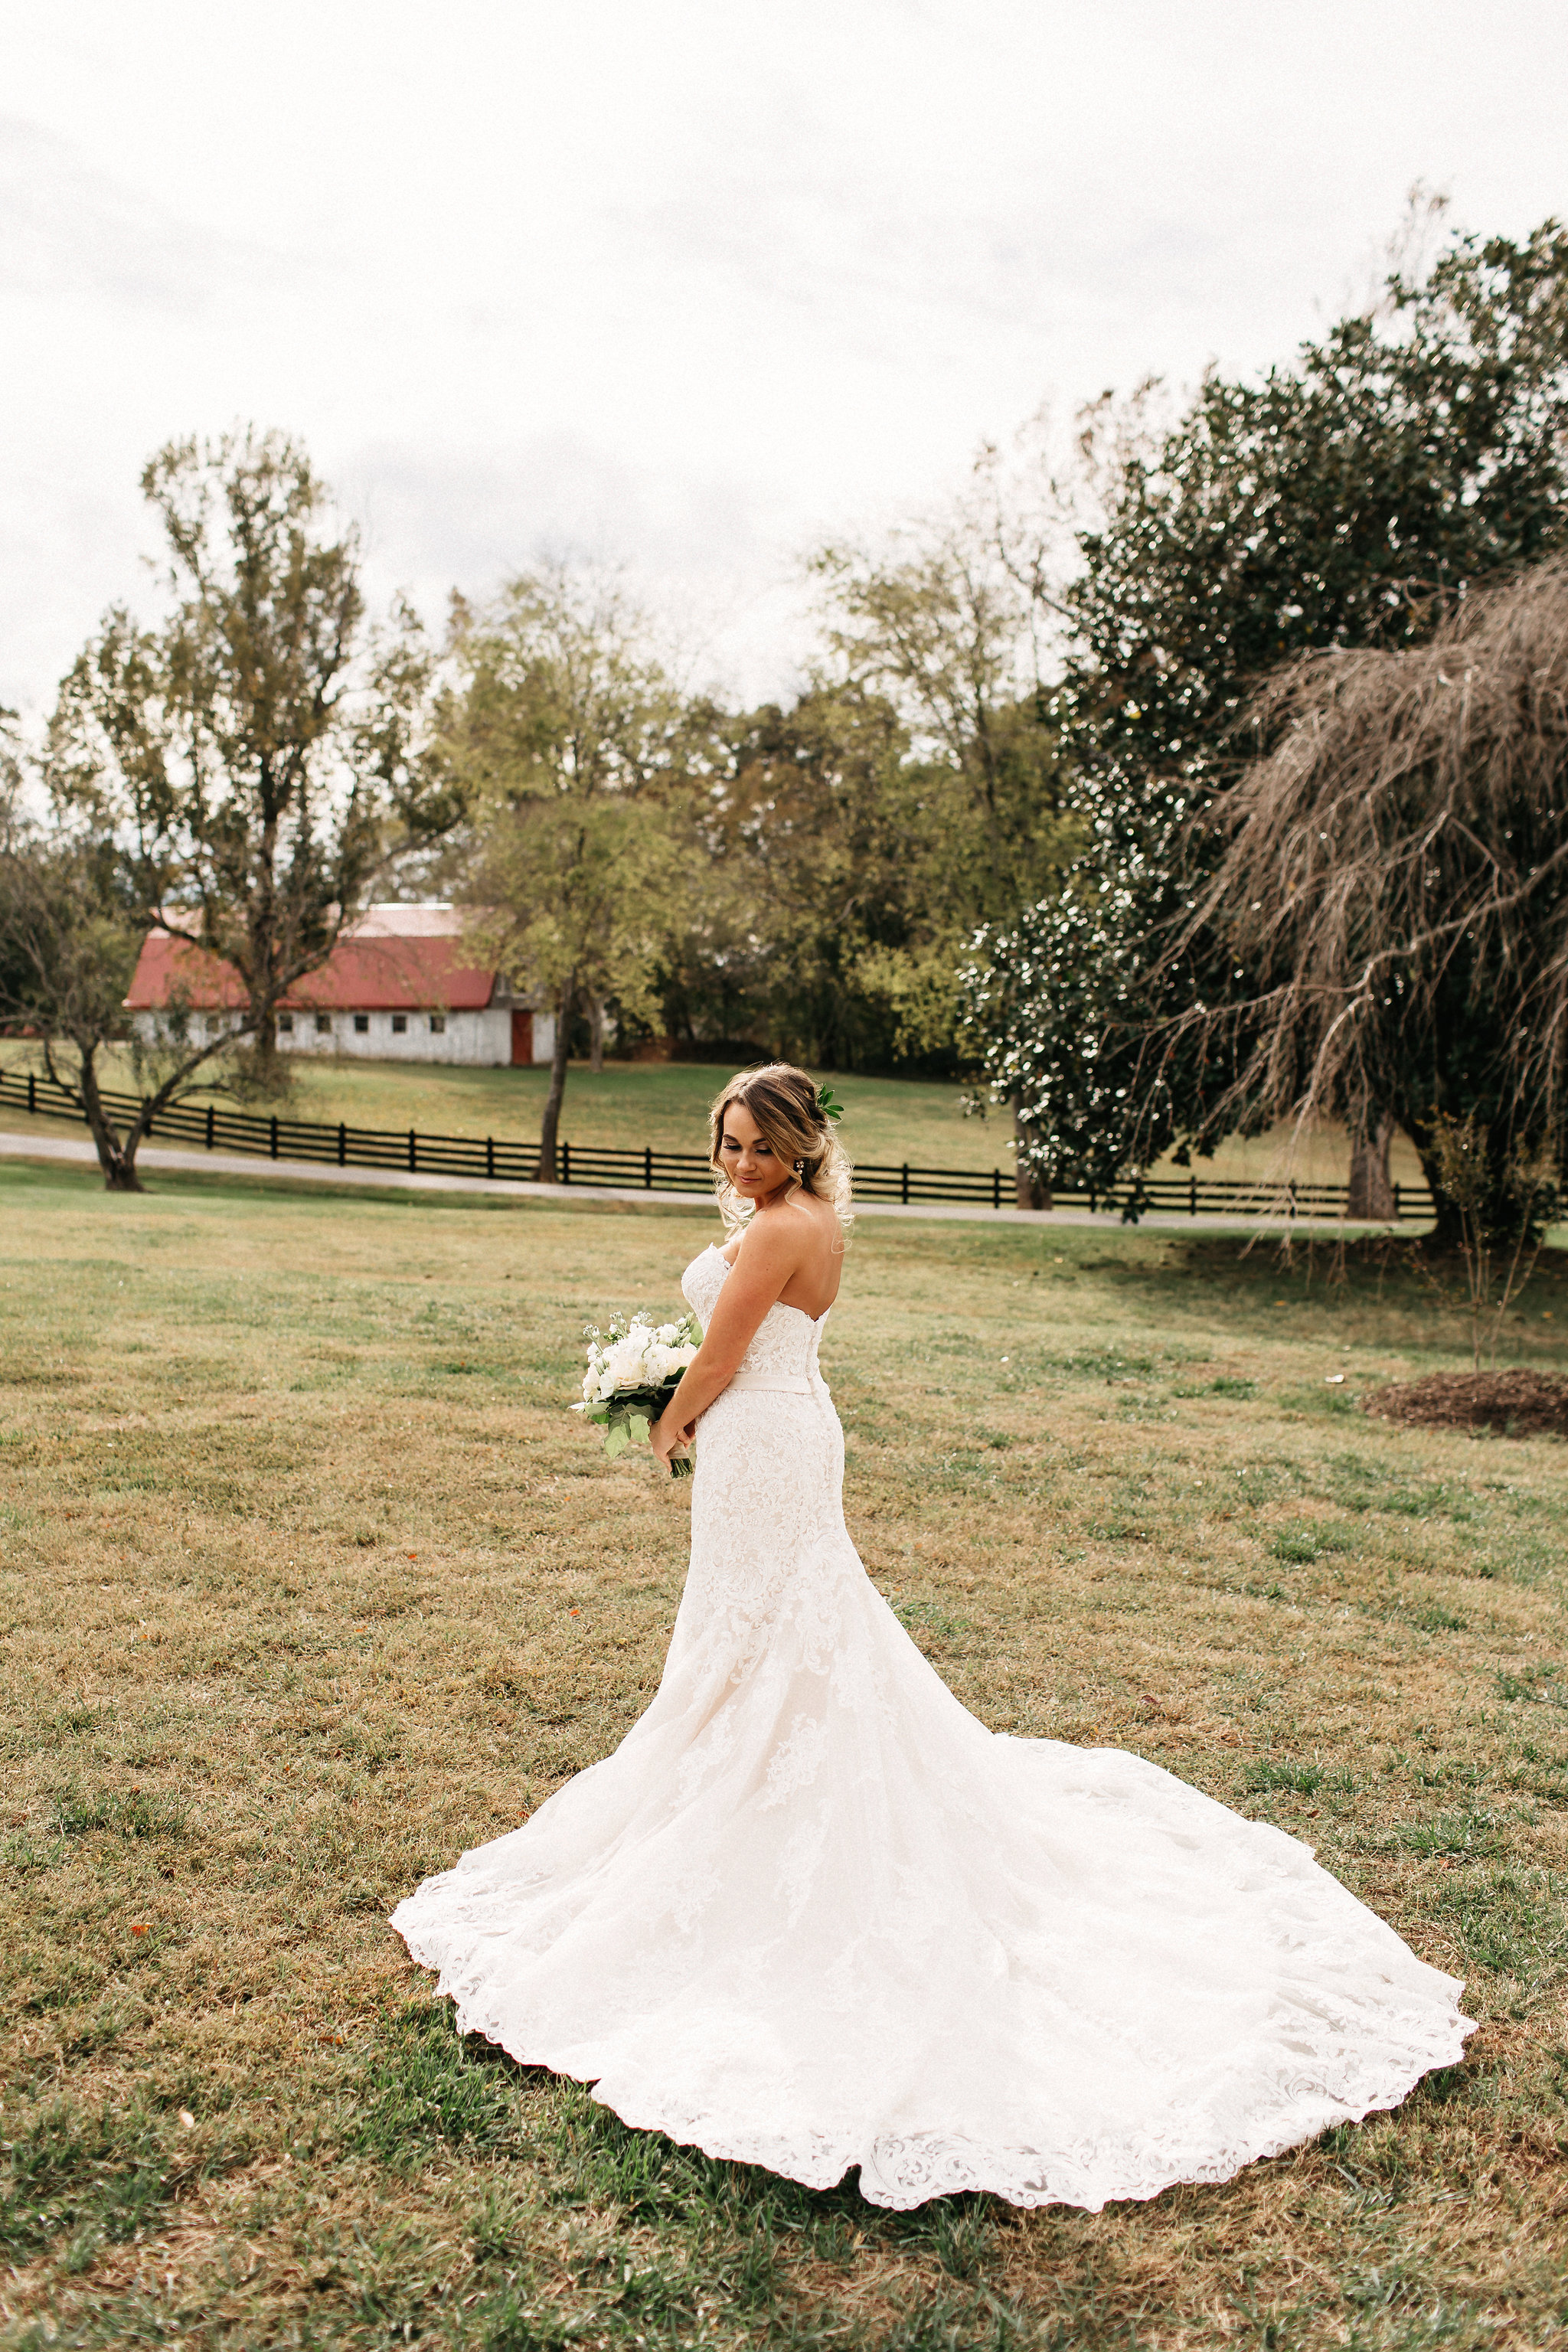 Ashley&NathanMarried2017-11-10at19.26.53PM88.jpg